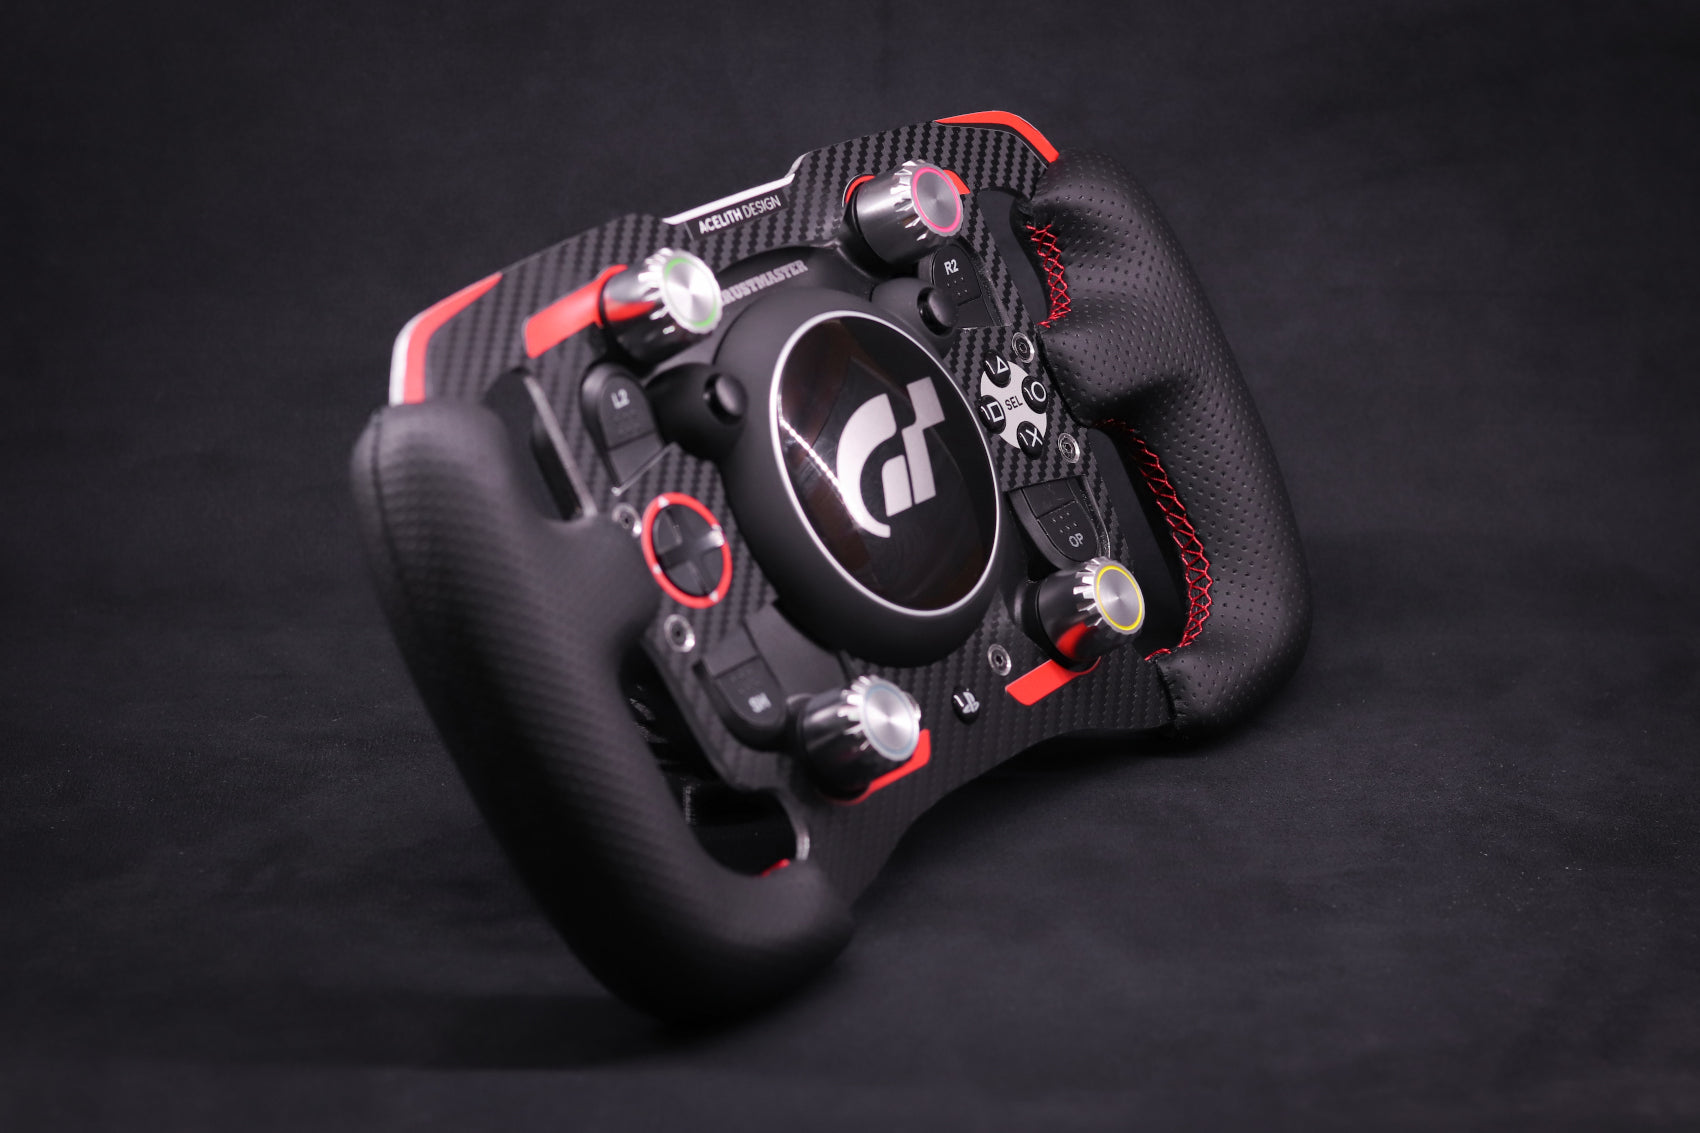 LIMITED - MOD for Thrustmaster T-GT with leather handles - Red